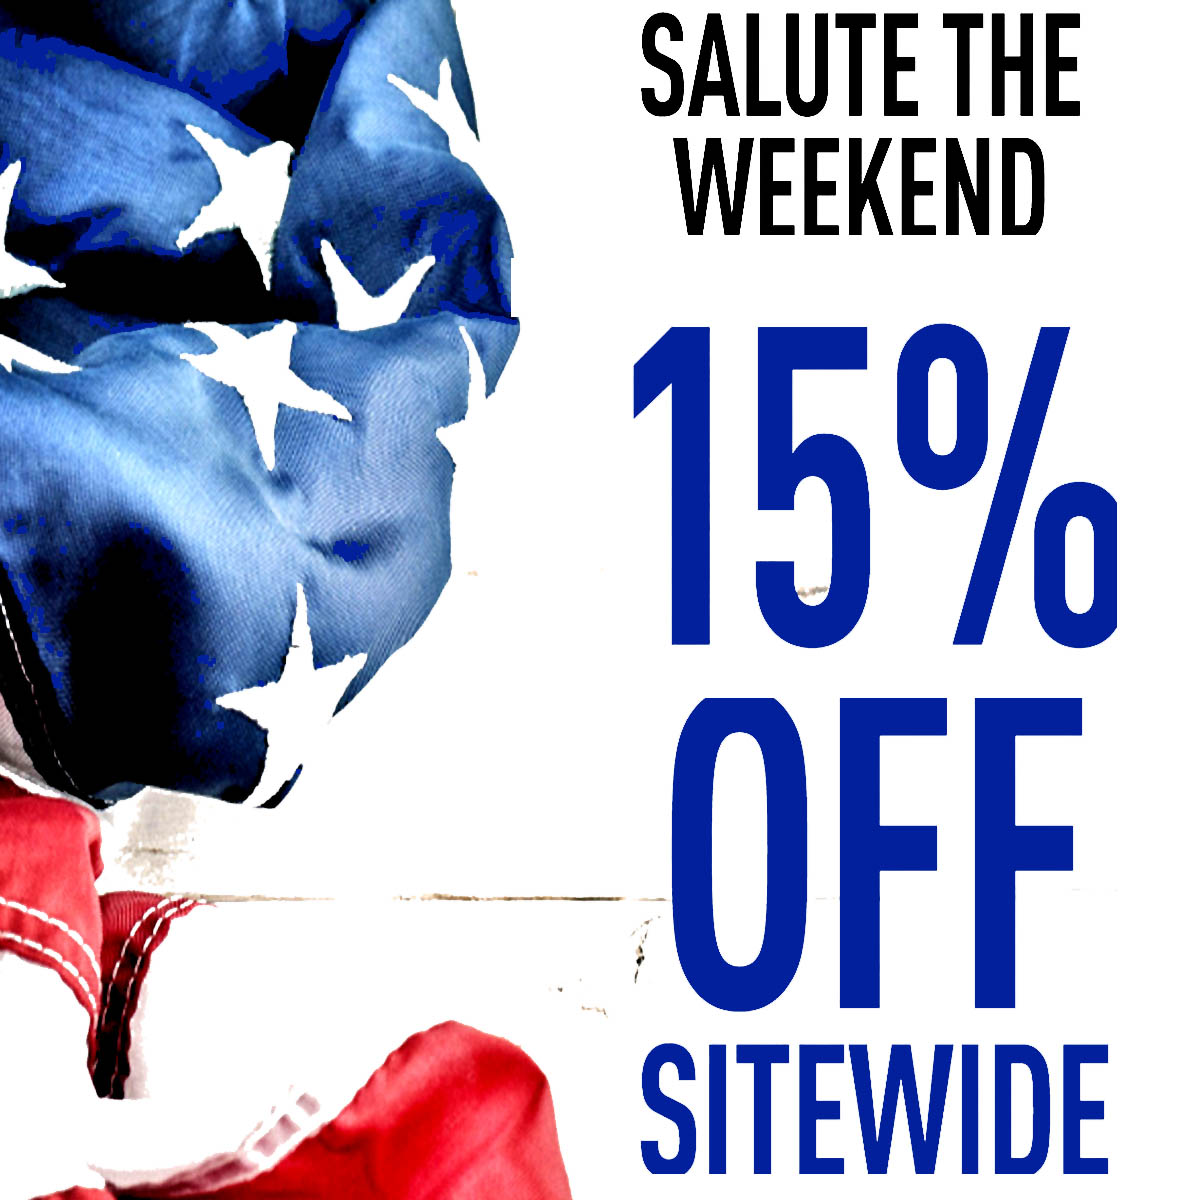 Midwest Supplies Get 15% Off Site Wide at Midwest Supplies With This MidwestSupplies.com Promo Code Coupon Code